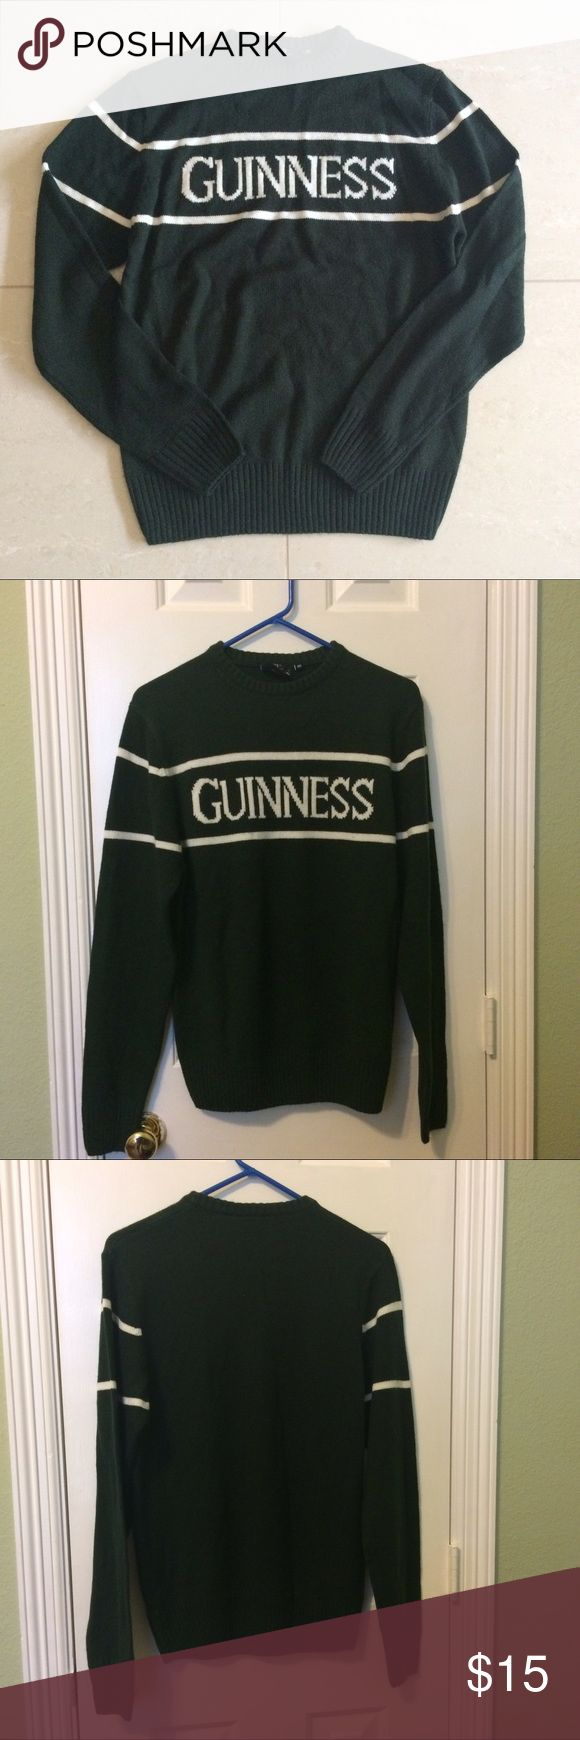 ☘️GUINNESS SWEATER☘️ Guinness forest-green sweater from the Guinness Factory in Dublin!!! ☘️☘️☘️ Men's sweater size XS but can be unisex. It's so warm!!! Sweaters Crewneck